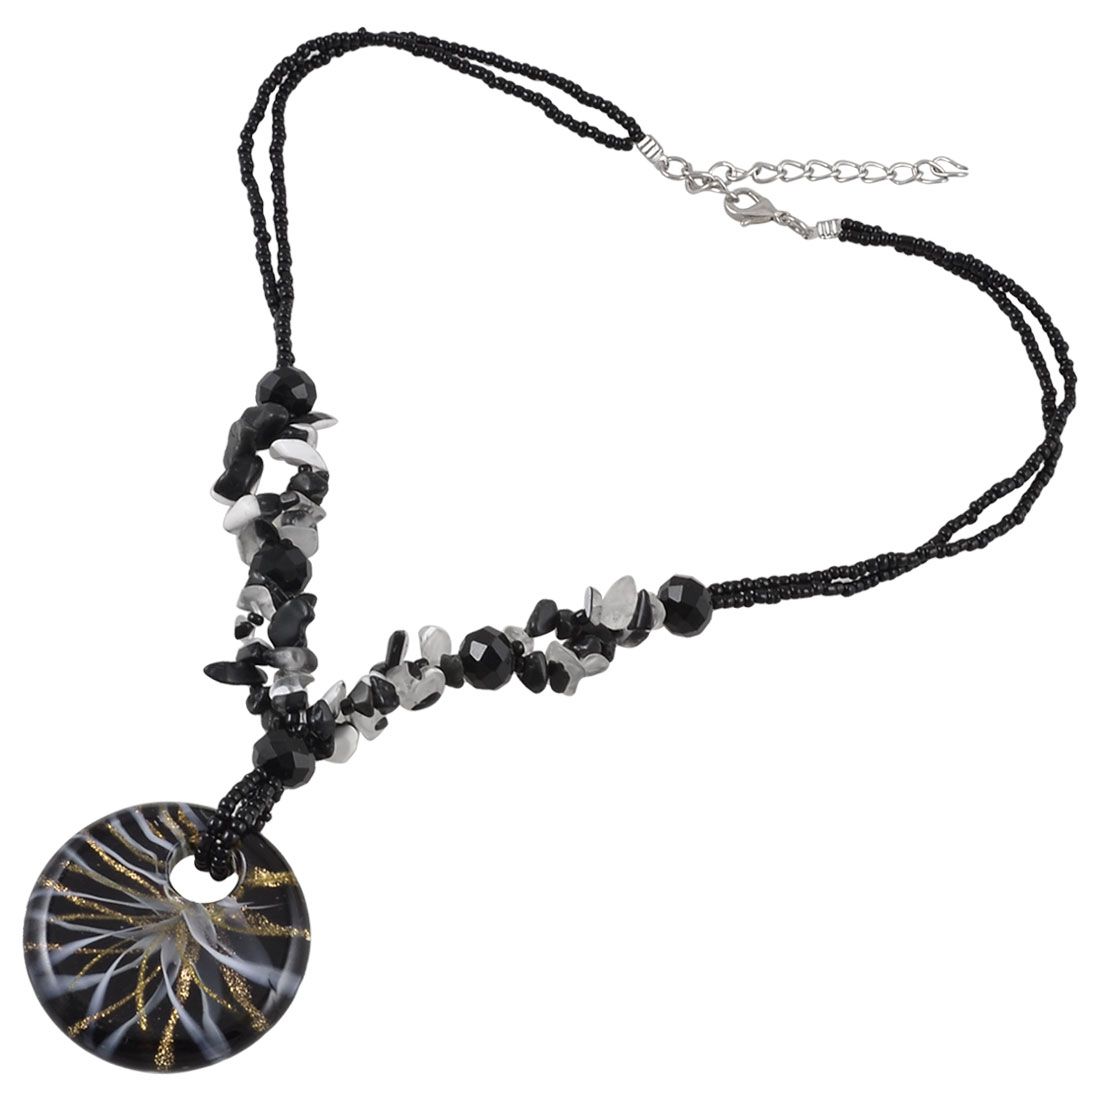 Women Multi Shaped Beads Accent Round Glitter Powder Floral Glass Pendant Necklace Black